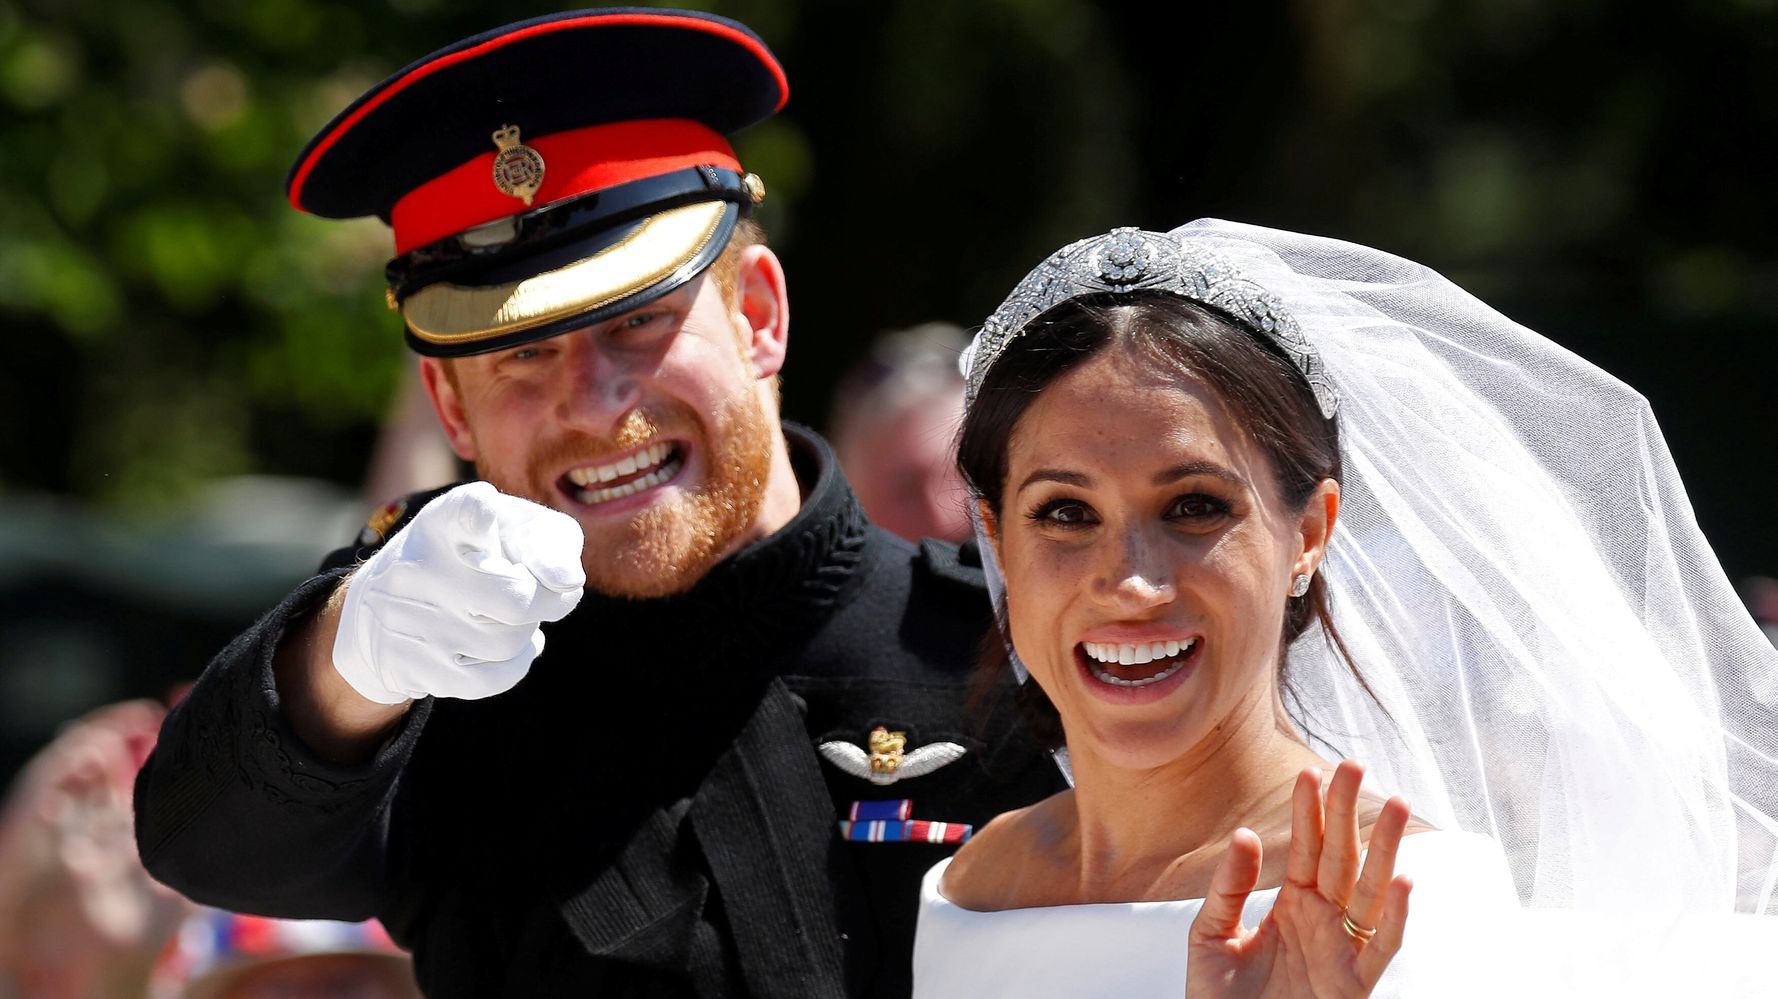 Royal Expert On What Makes Prince Harry And Meghan Markle's Step Back So 'Tragic'